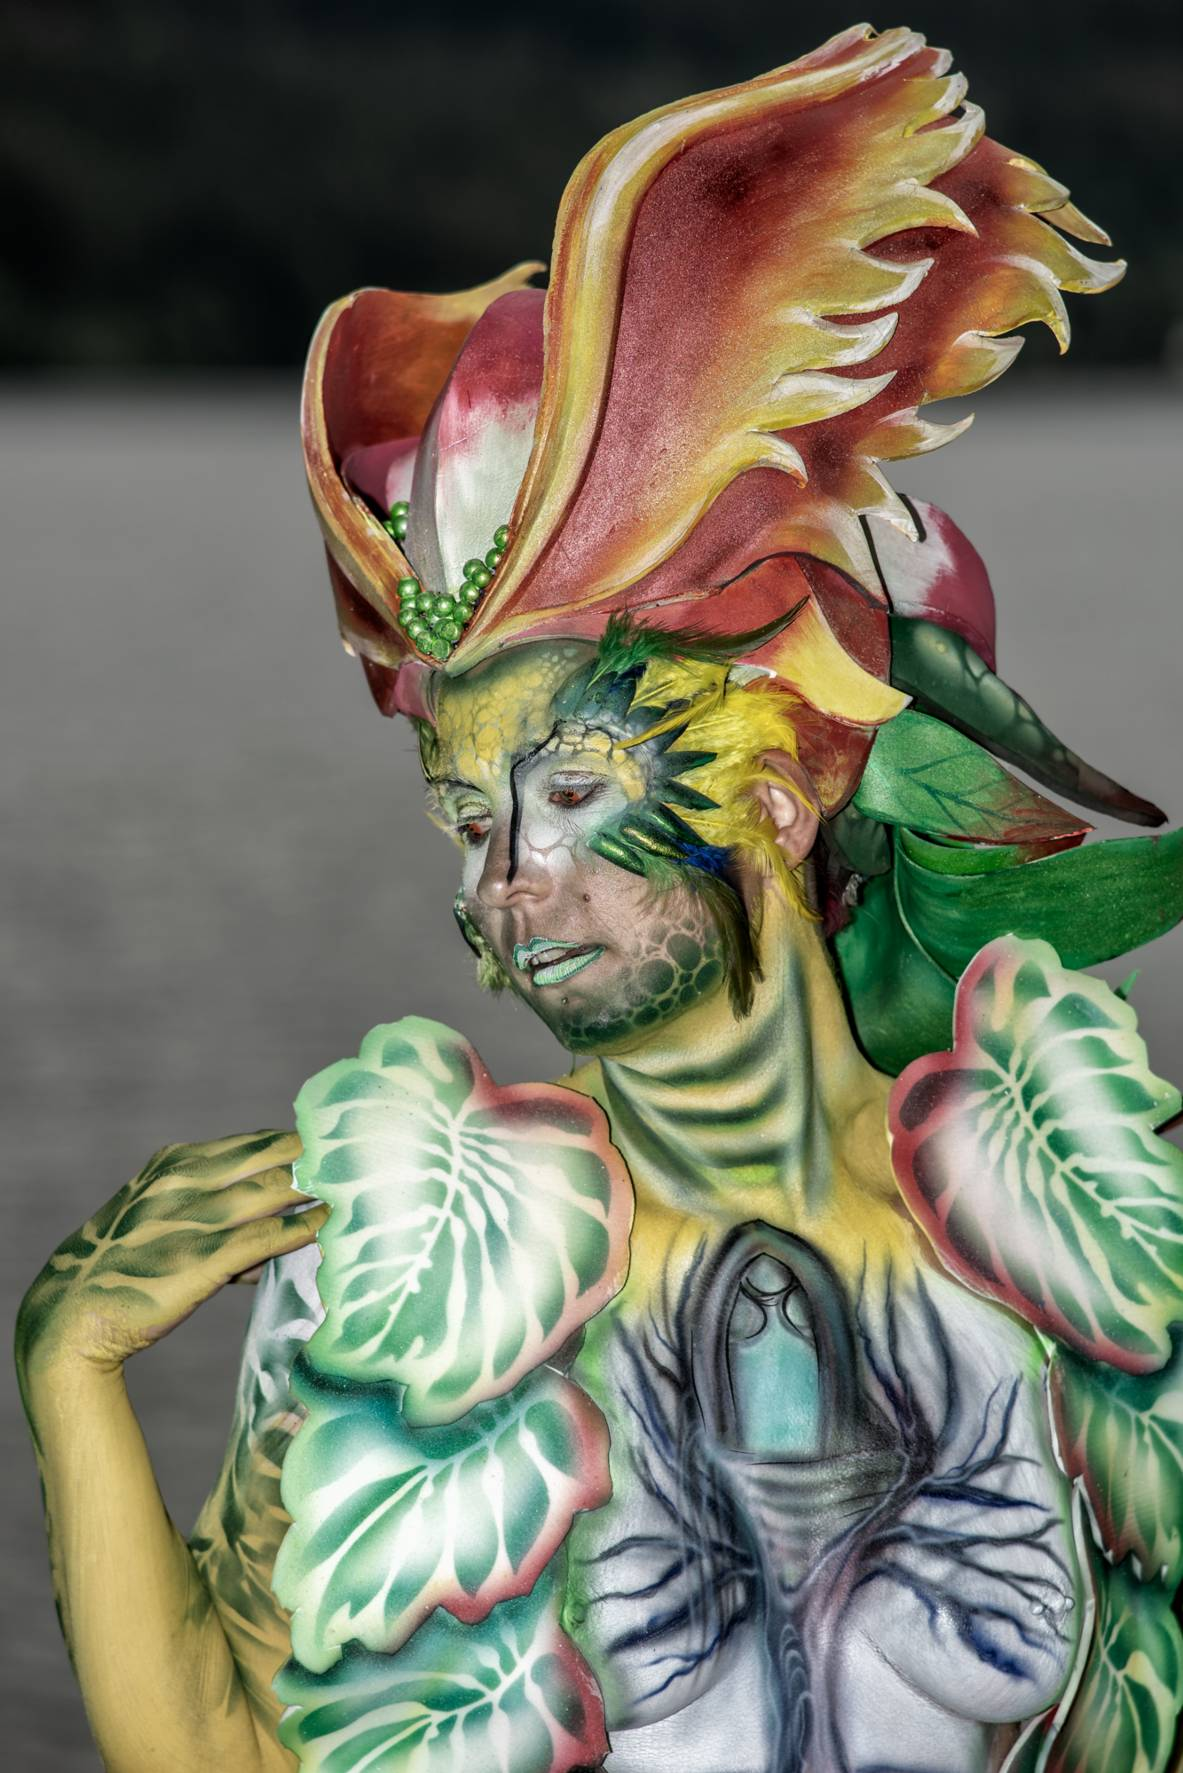 FA_Bodypainting_JIM_2018_21